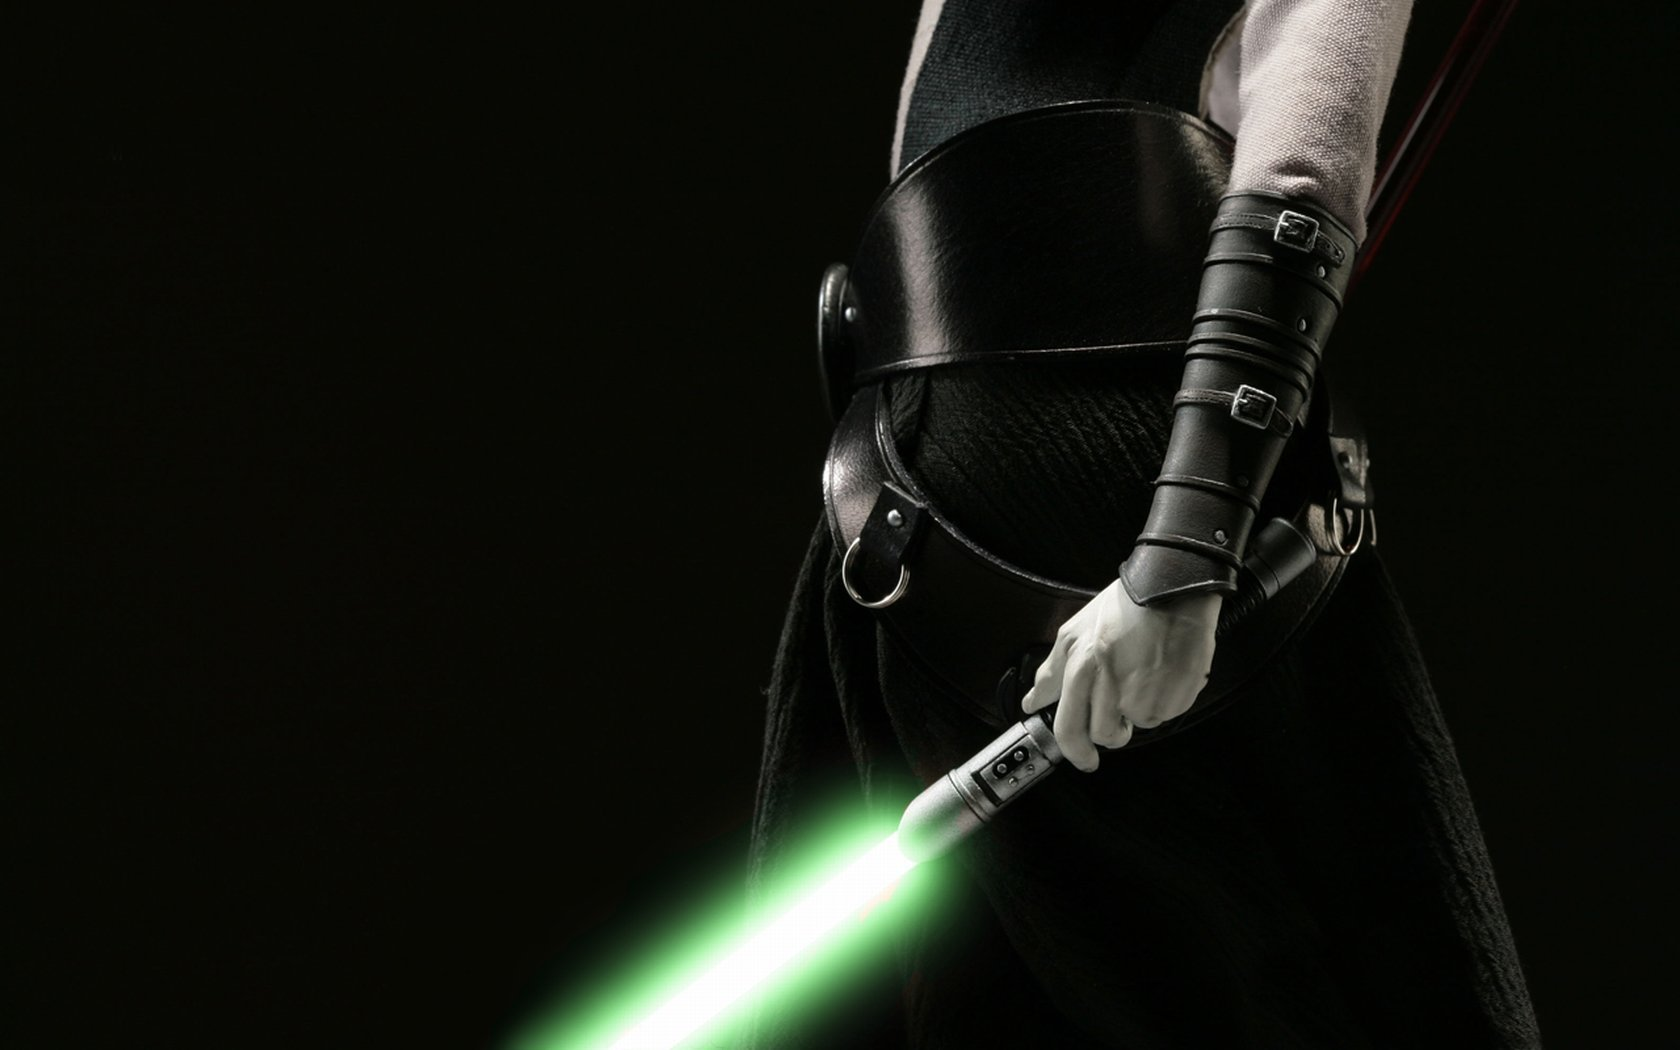 Movie - Star Wars  Lightsaber Dark Wallpaper